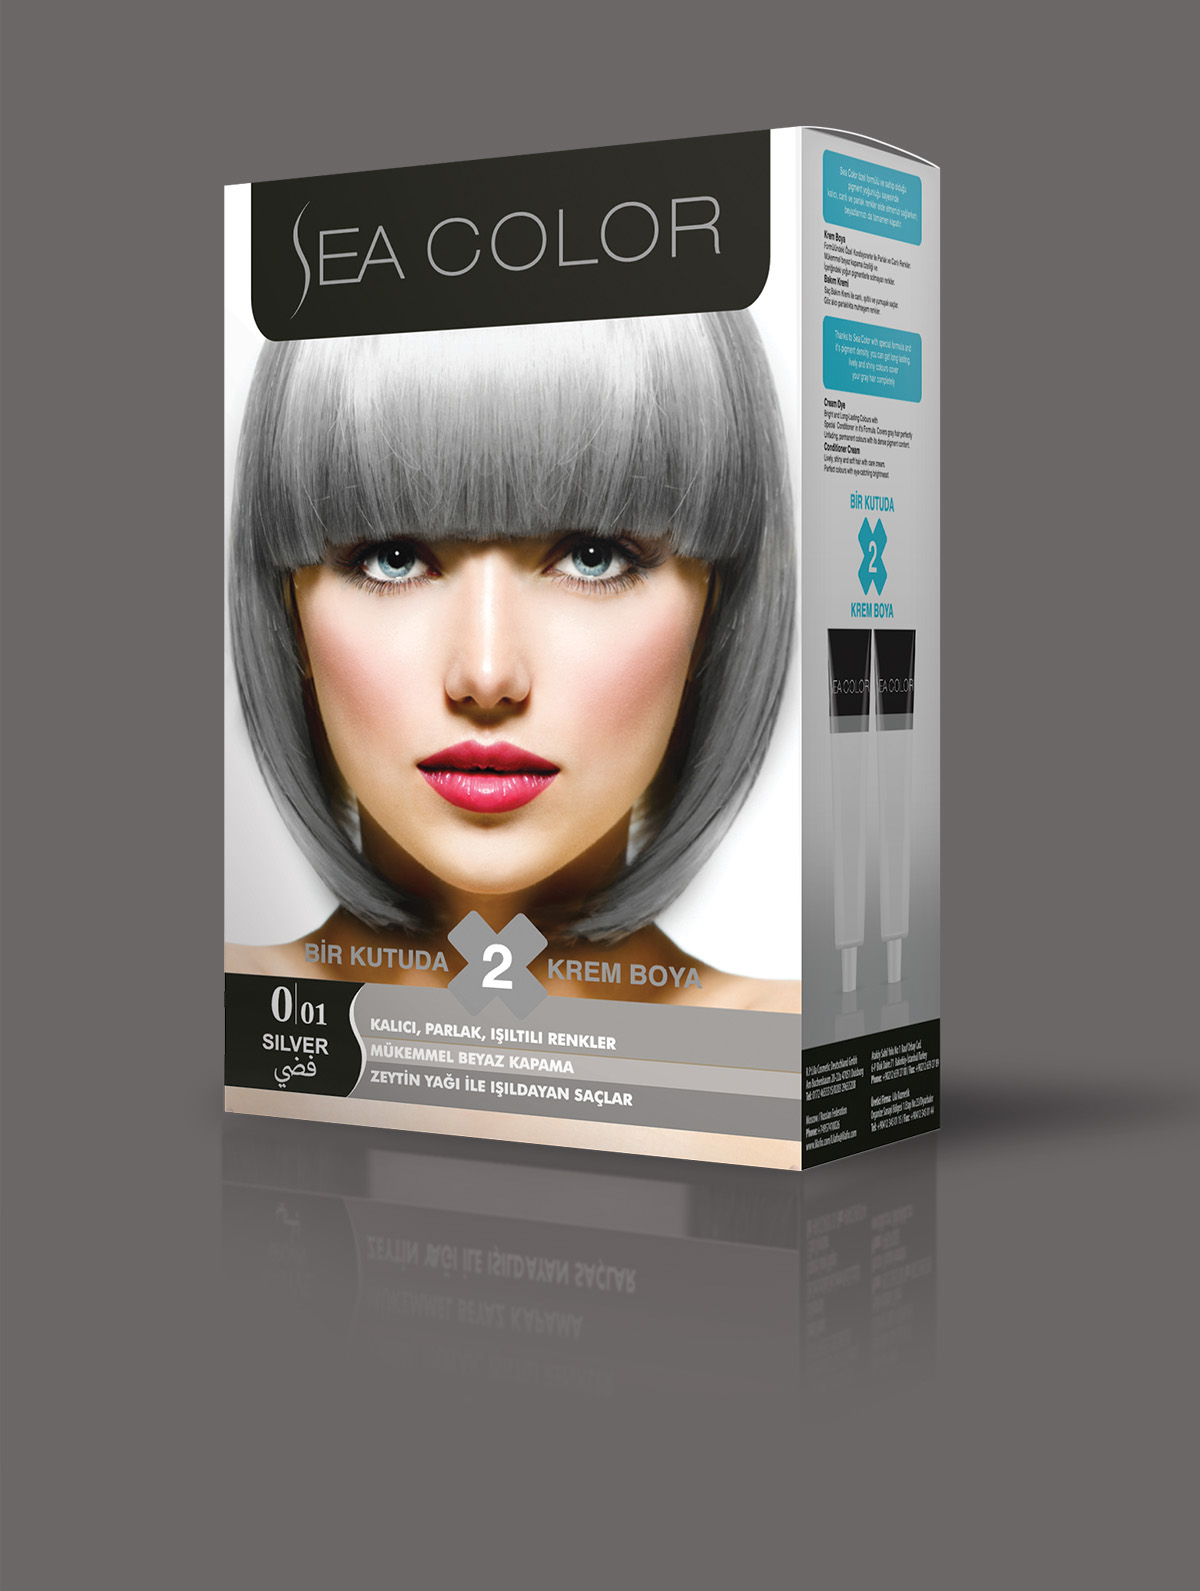 New Gray Hair Coloring Products